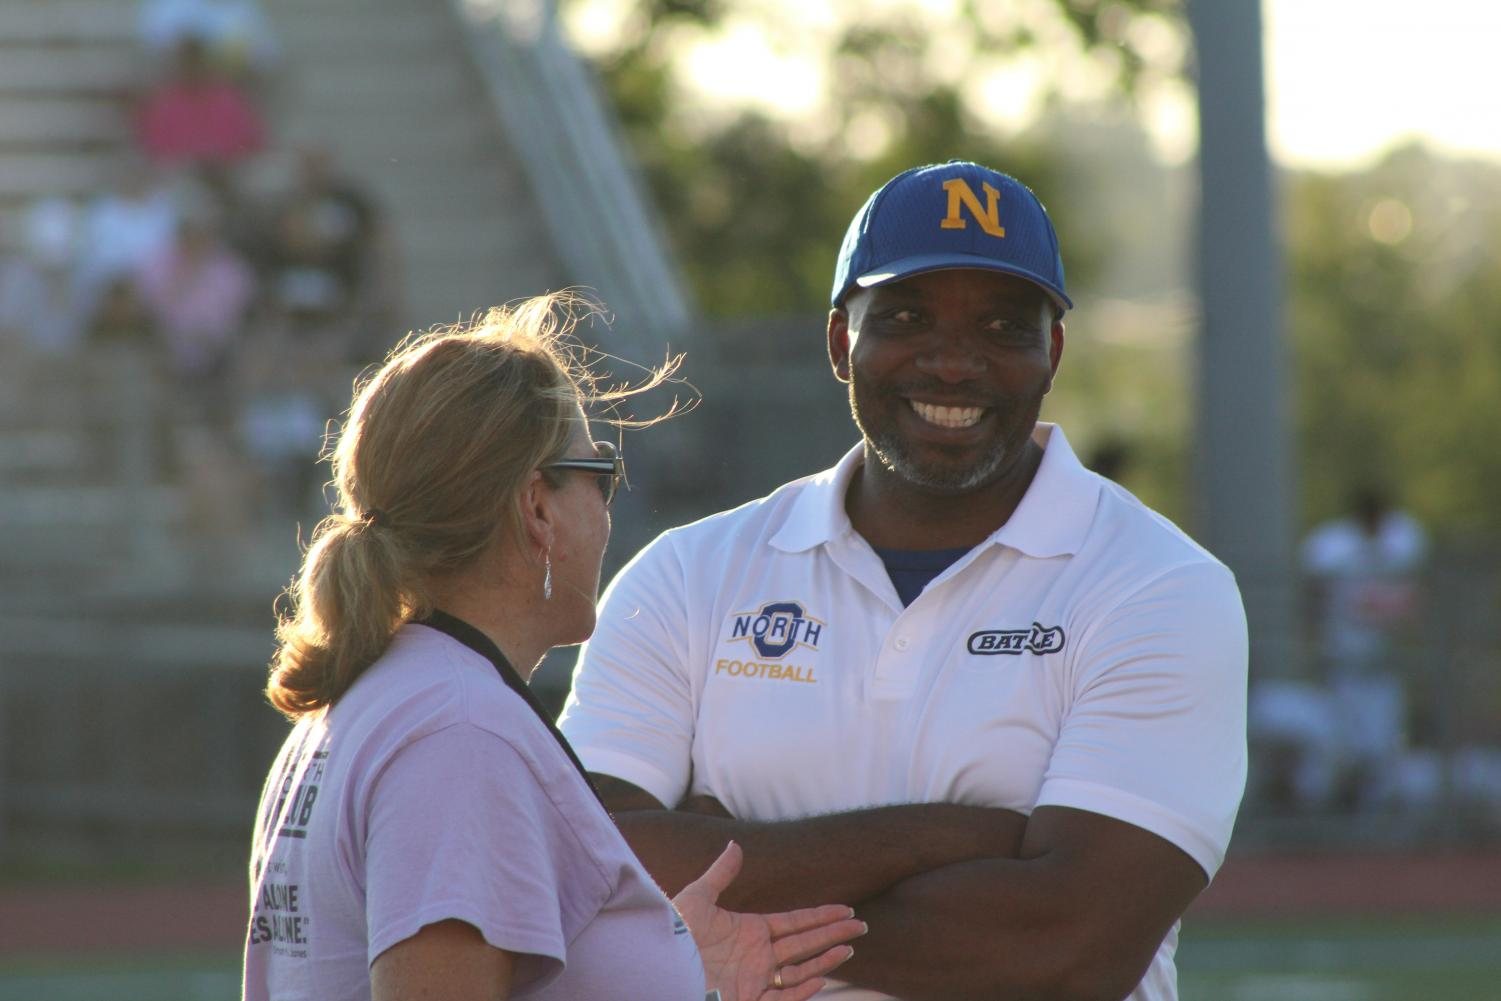 Johnson laughs on the sidelines of the varsity football game against Burke with co-worker Melinda Bailey.